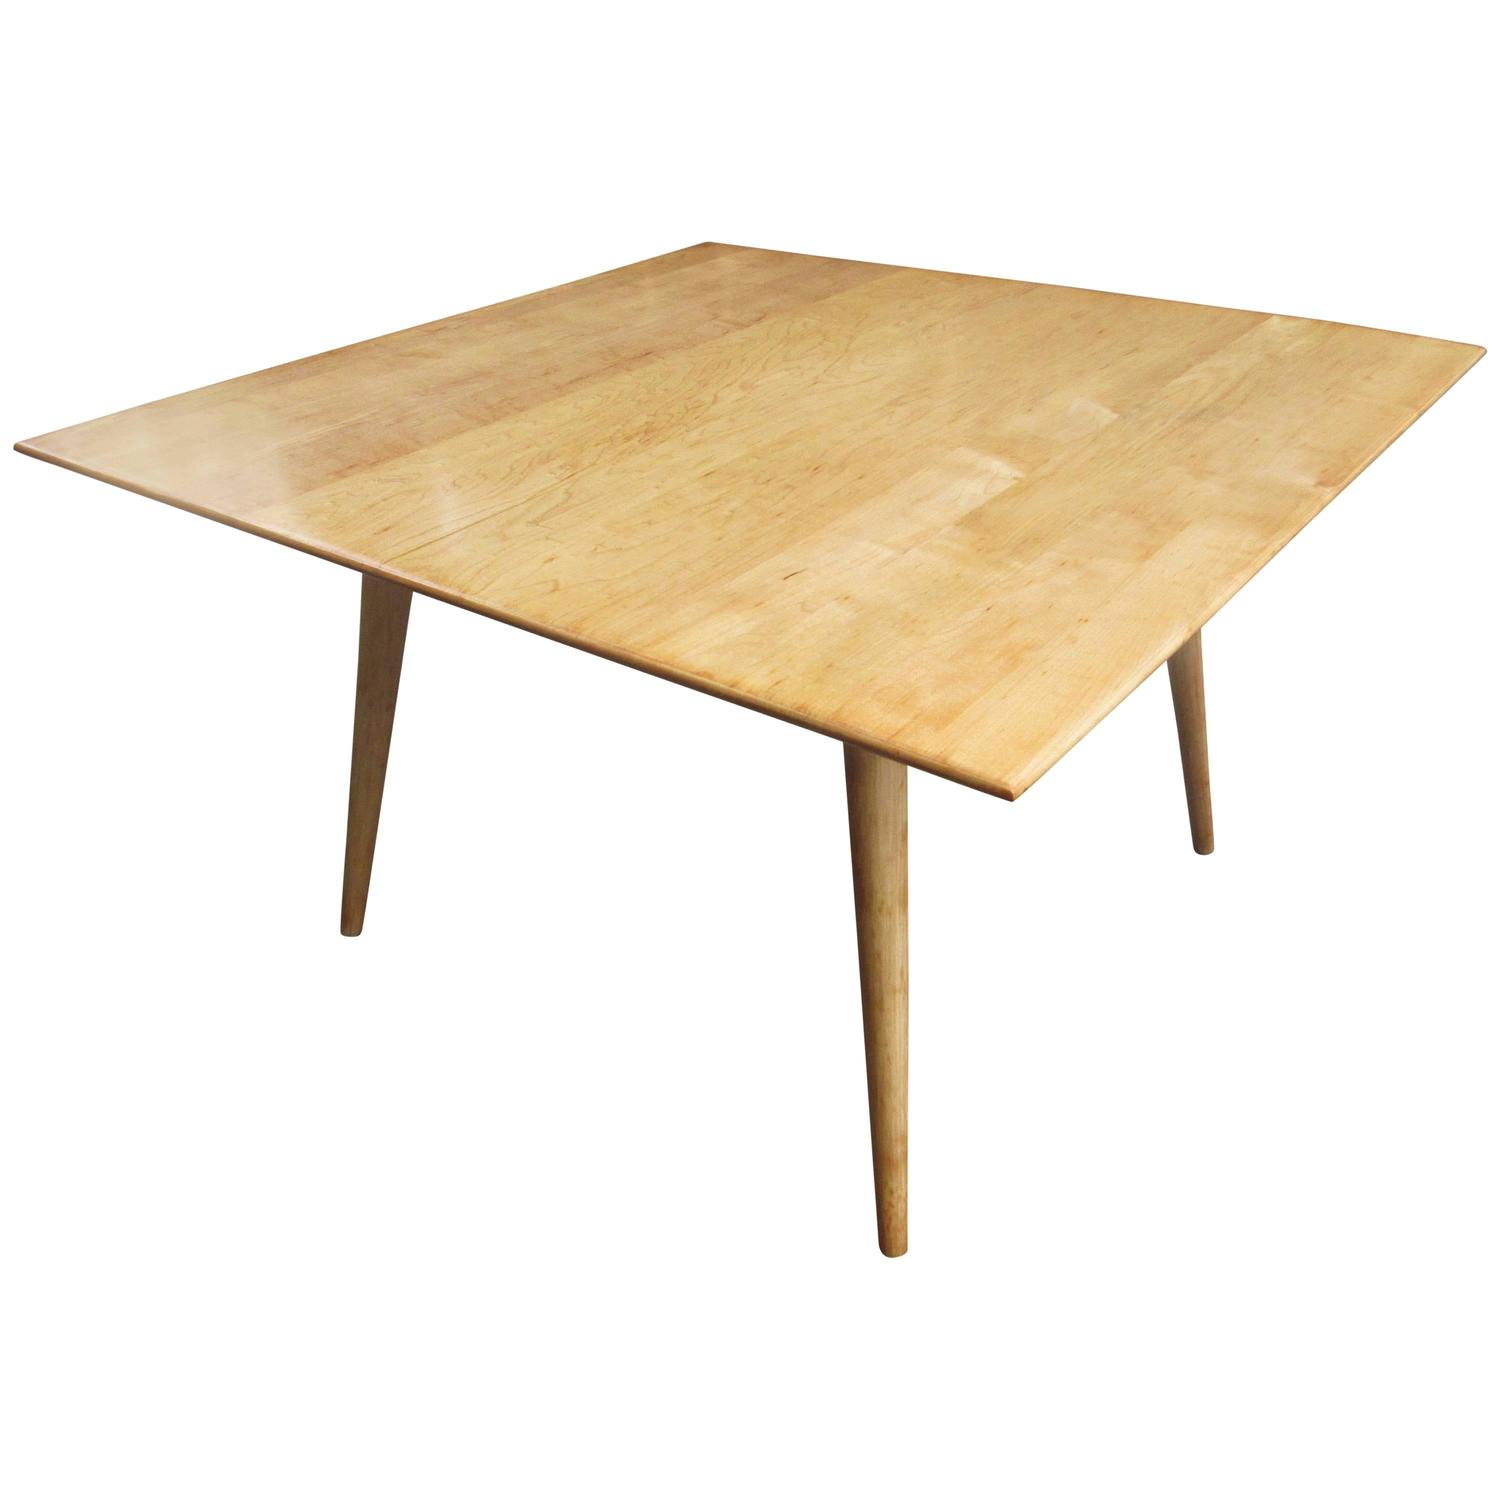 Paul mccobb planner group square coffee table or low table at 1stdibs Low coffee table square